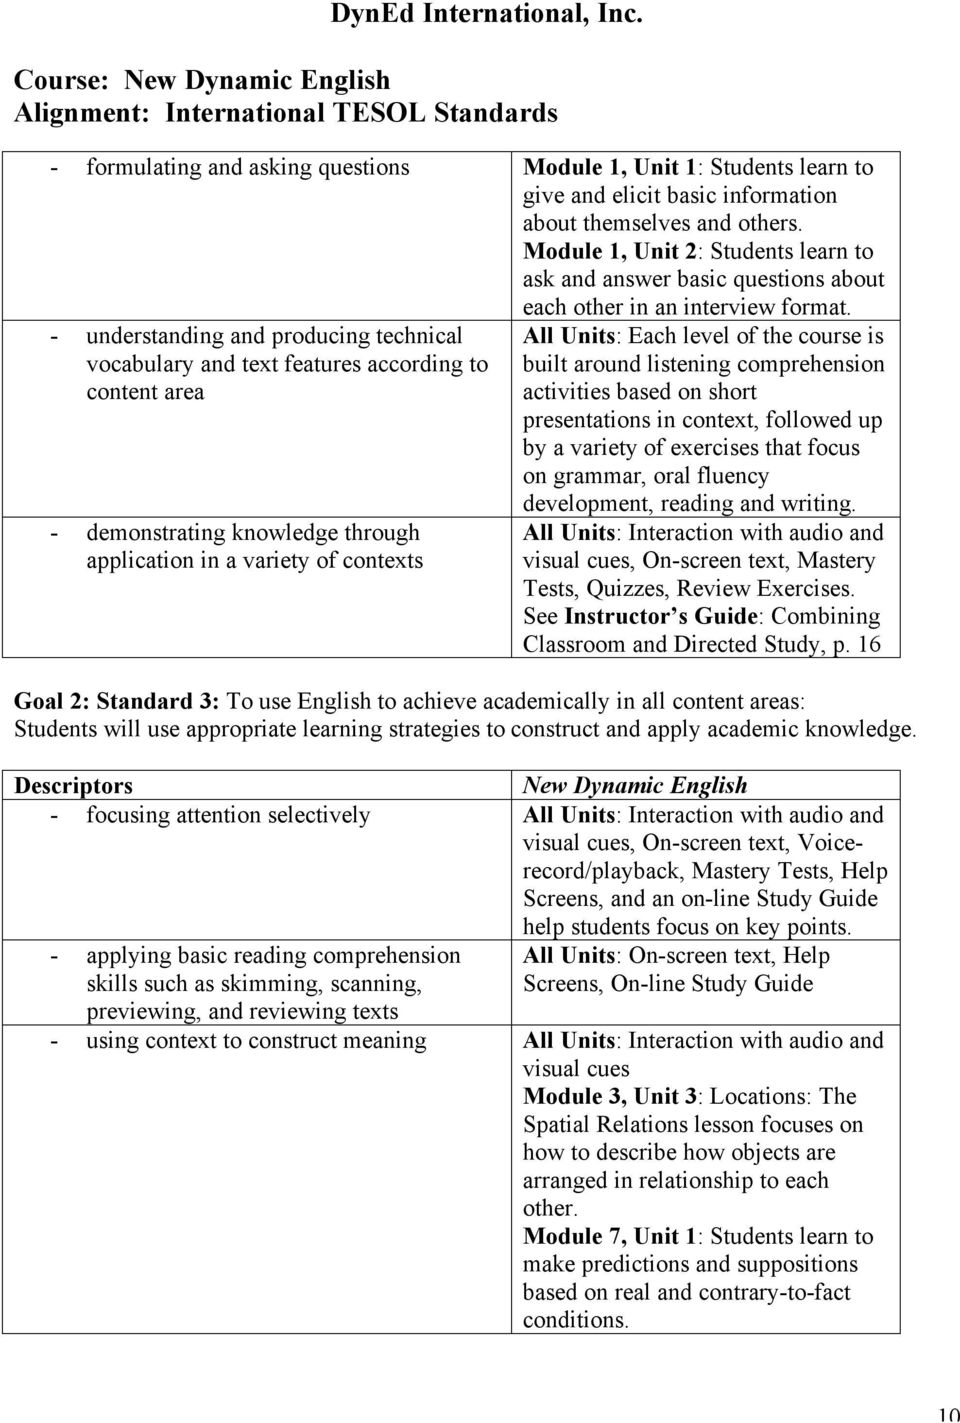 - understanding and producing technical vocabulary and text features according to content area - demonstrating knowledge through application in a variety of contexts All Units: Each level of the